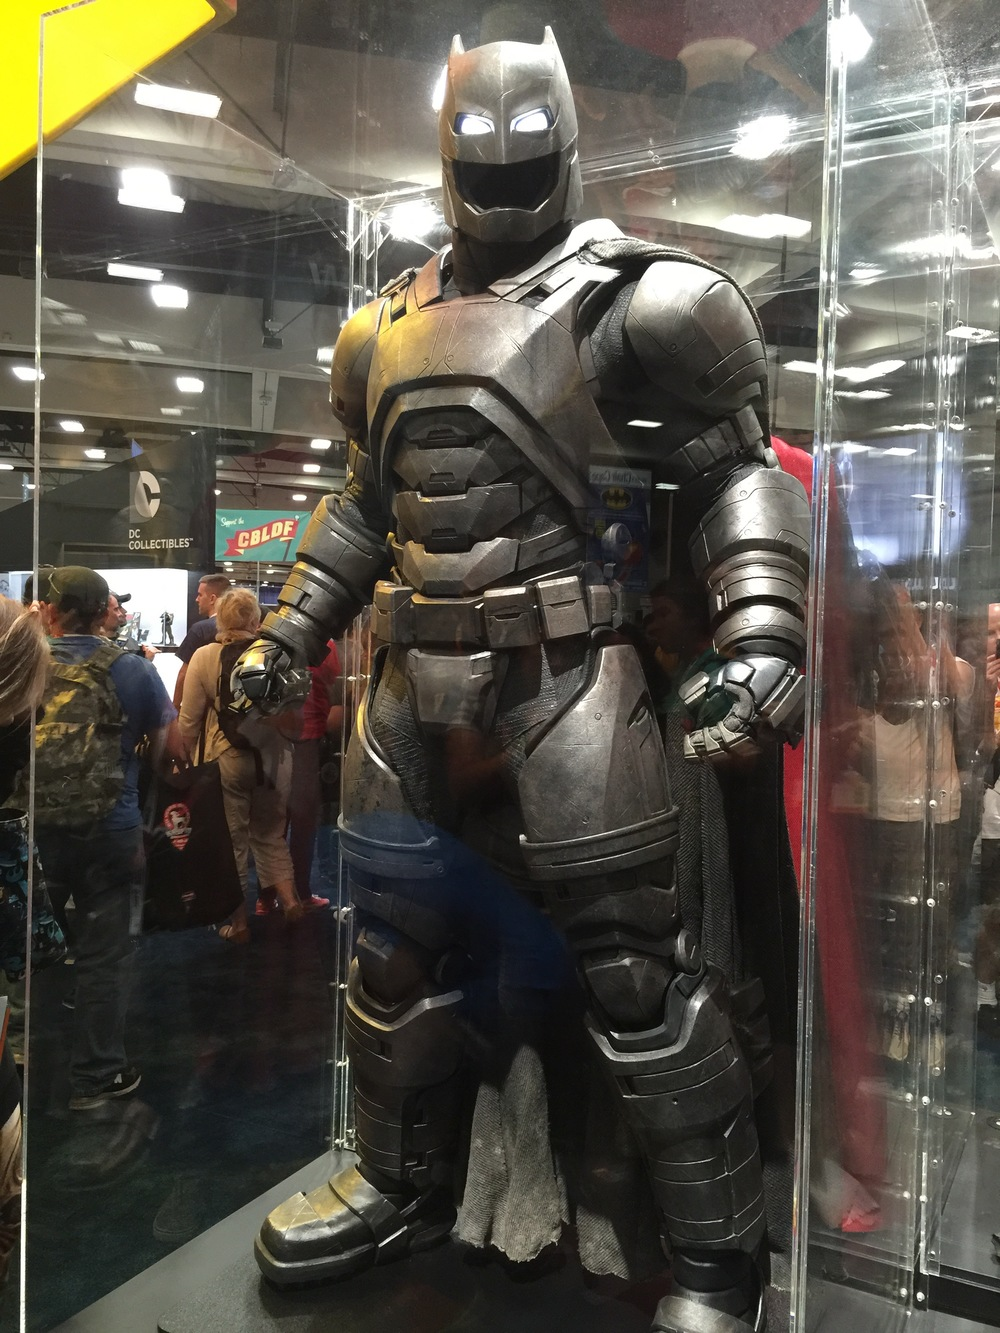 Batman V Superman Batman Armor Costume Weapon And